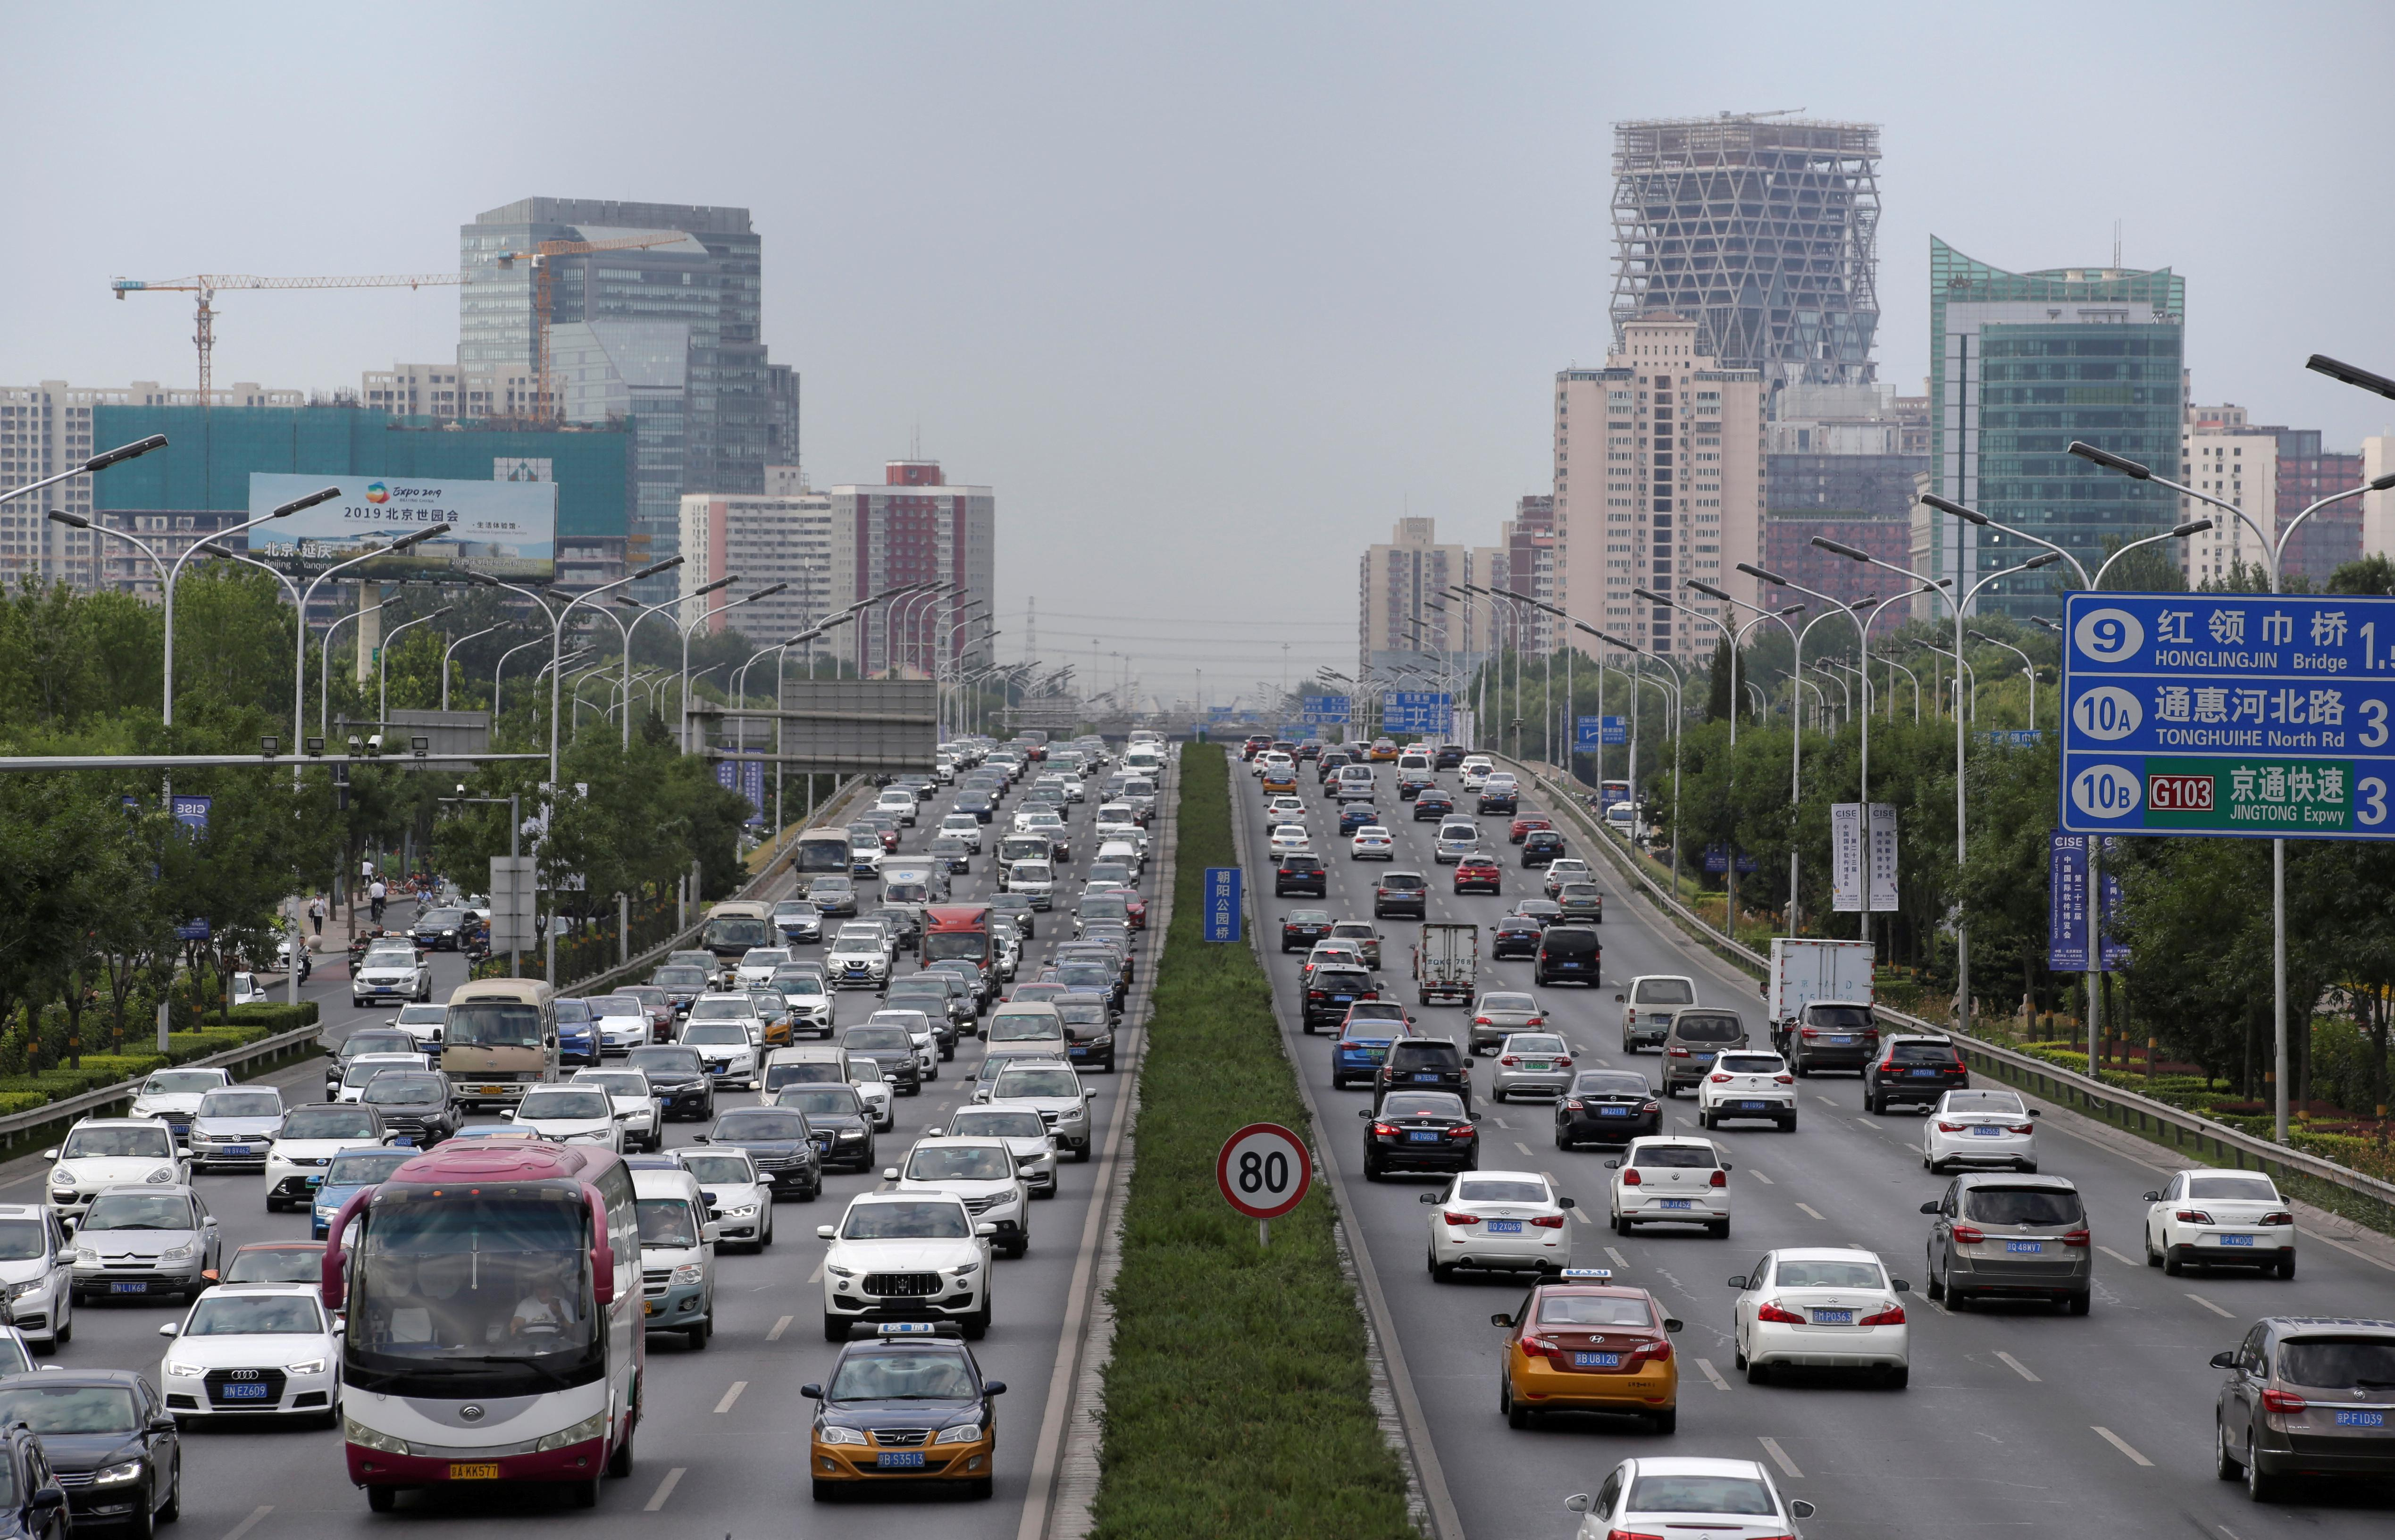 China's auto sales face more bumps ahead, industry body warns, after latest slump